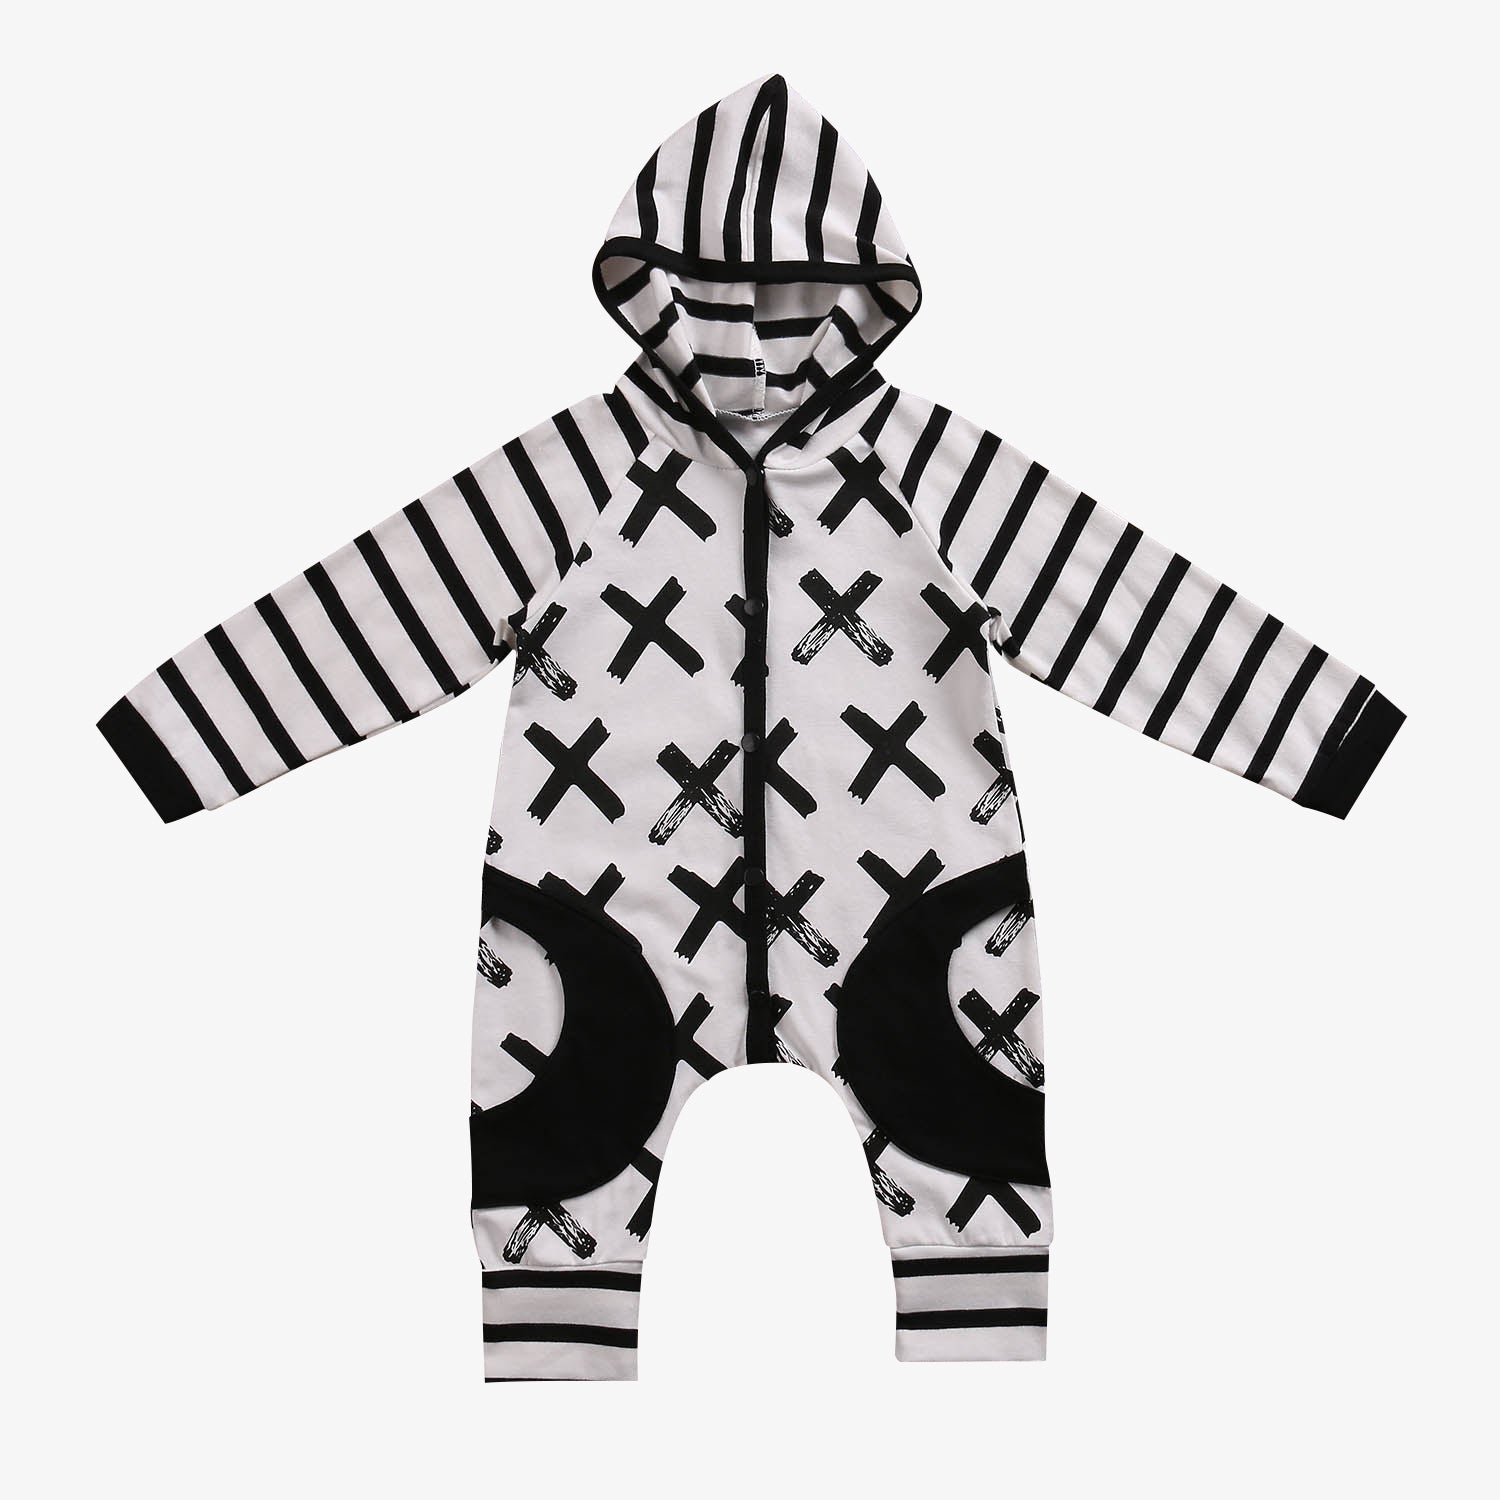 Stripes and X-Print ✖️ Hooded Long Sleeve Jumpsuit Baby Boy (White & Black)